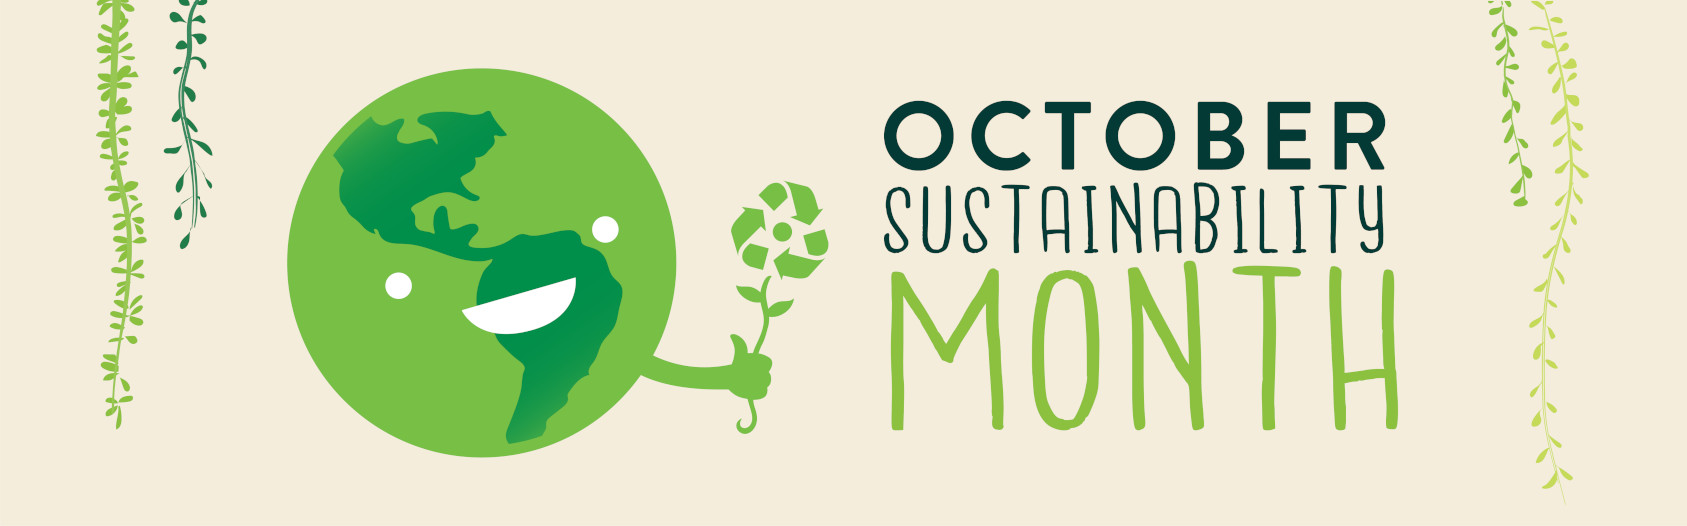 Campus Sustainability Month Banner